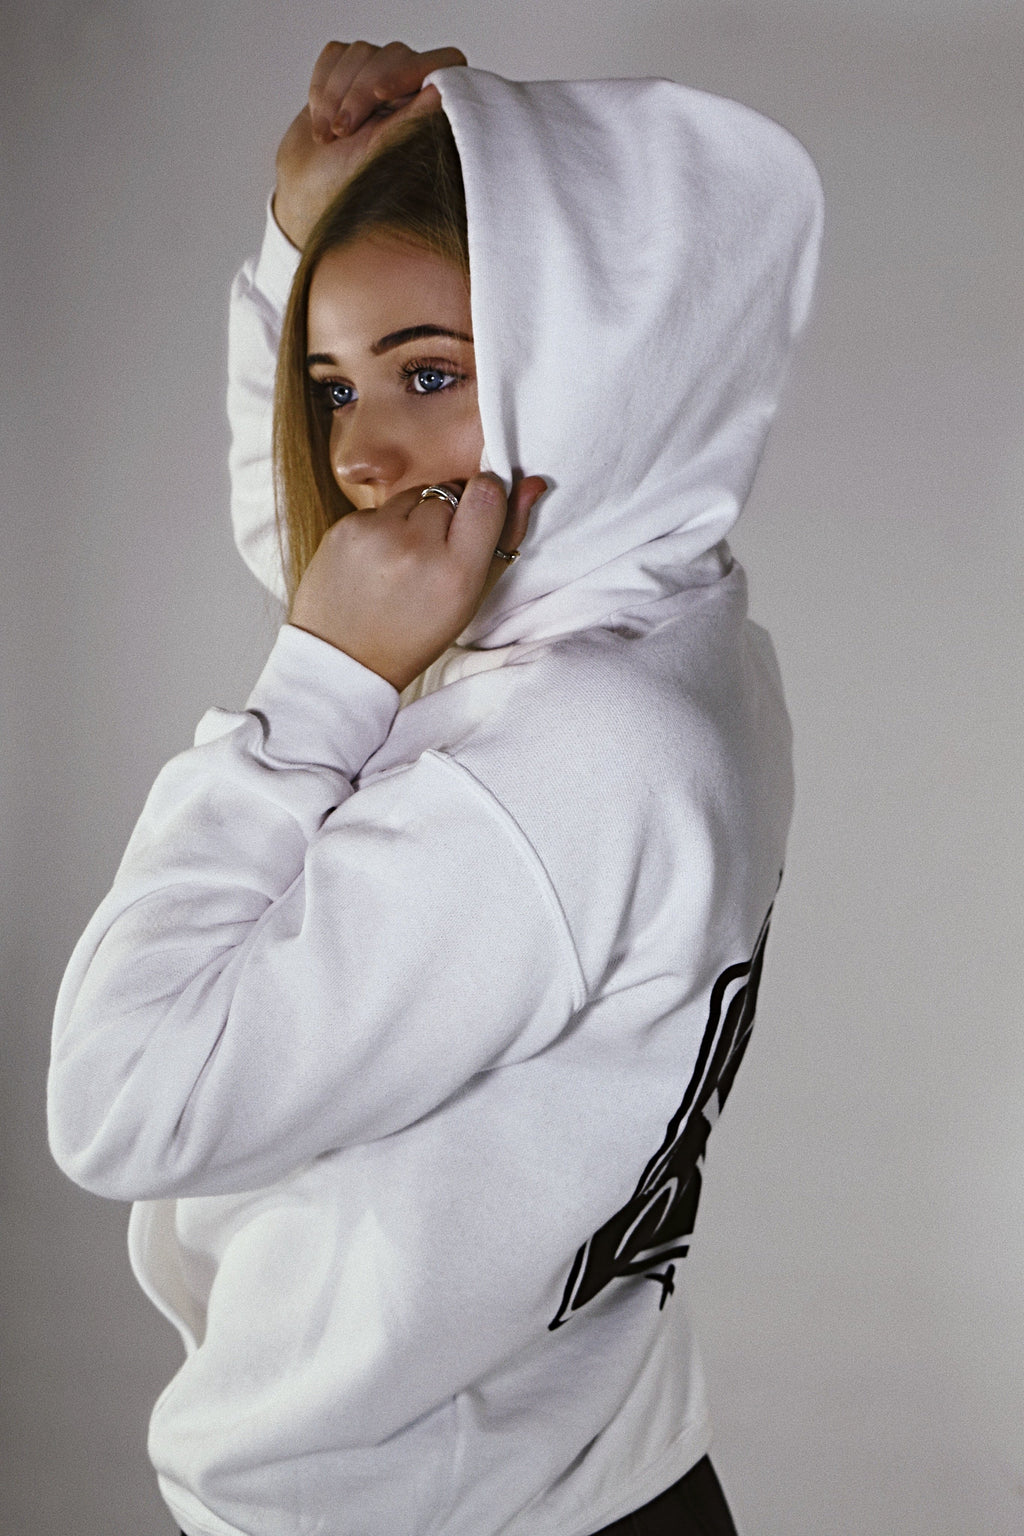 Pyrocynical white hoodie with black print on front and back